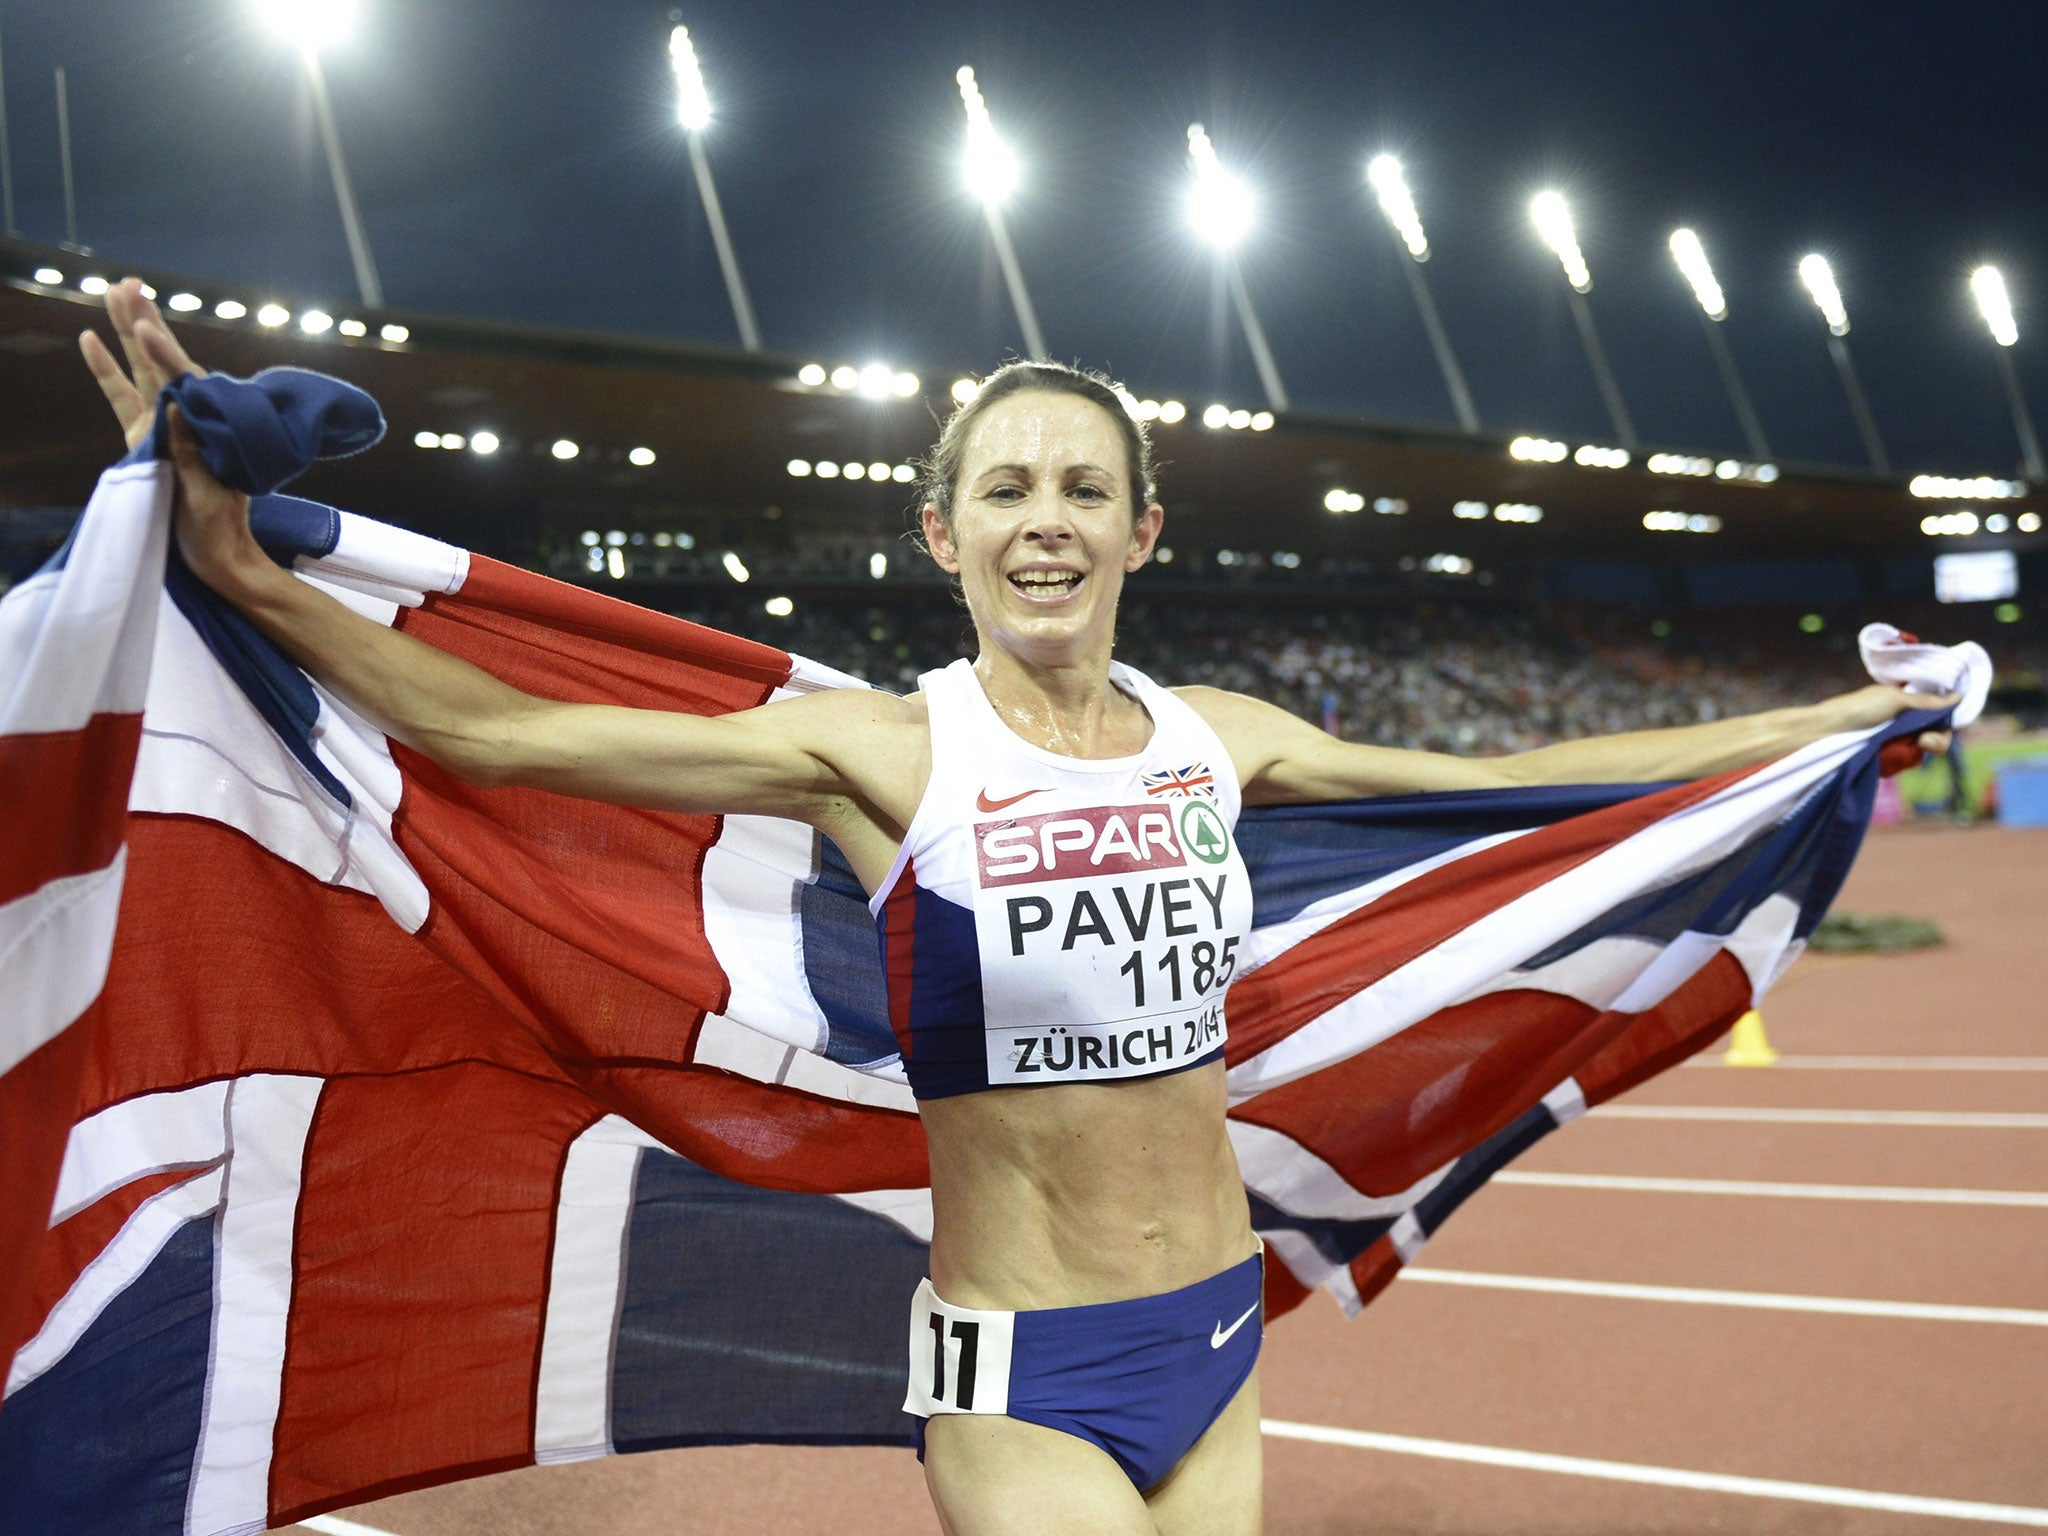 Jo Pavey gold medal: The science of her long-distance success